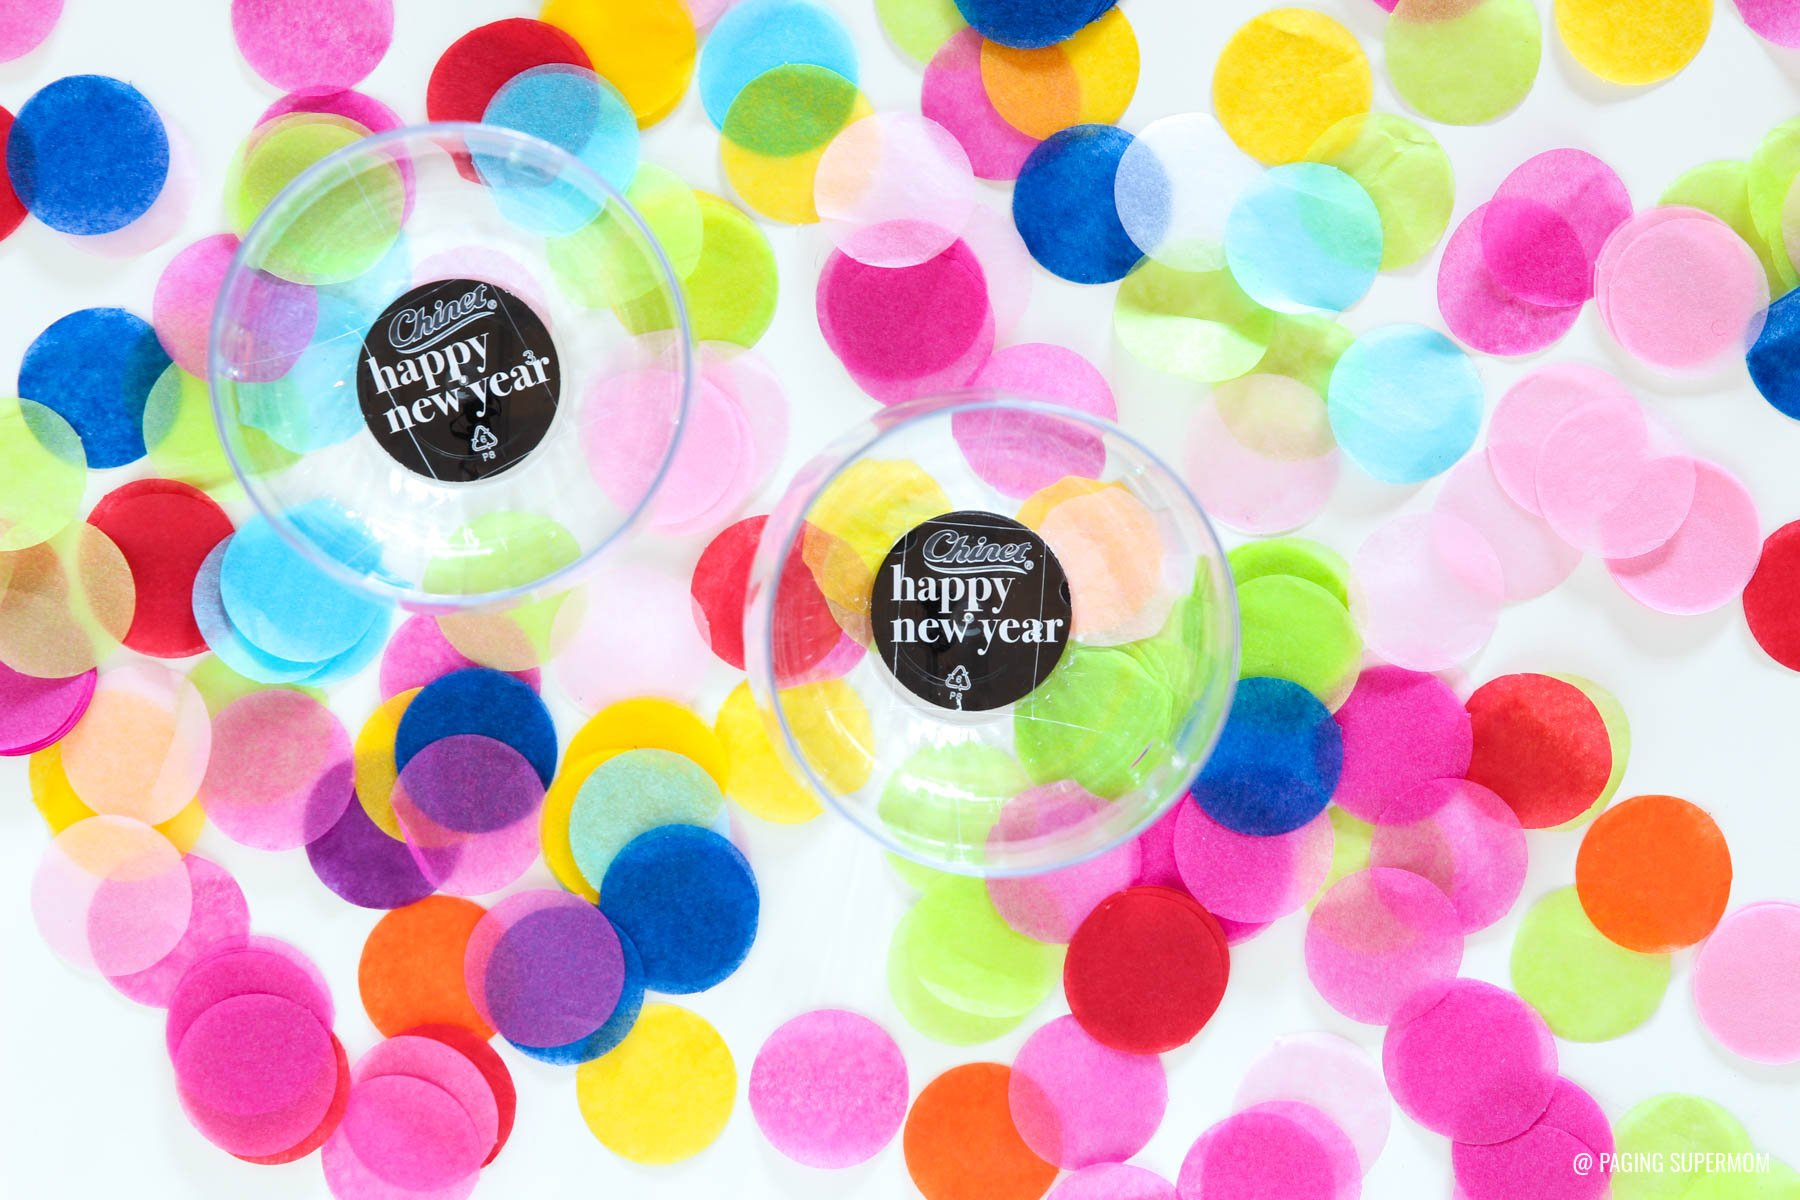 Free Template & You Can Edit the Year on these Happy New Year Party Punchables - New Year's cupcake toppers or glue onto glasses via @PagingSupermom